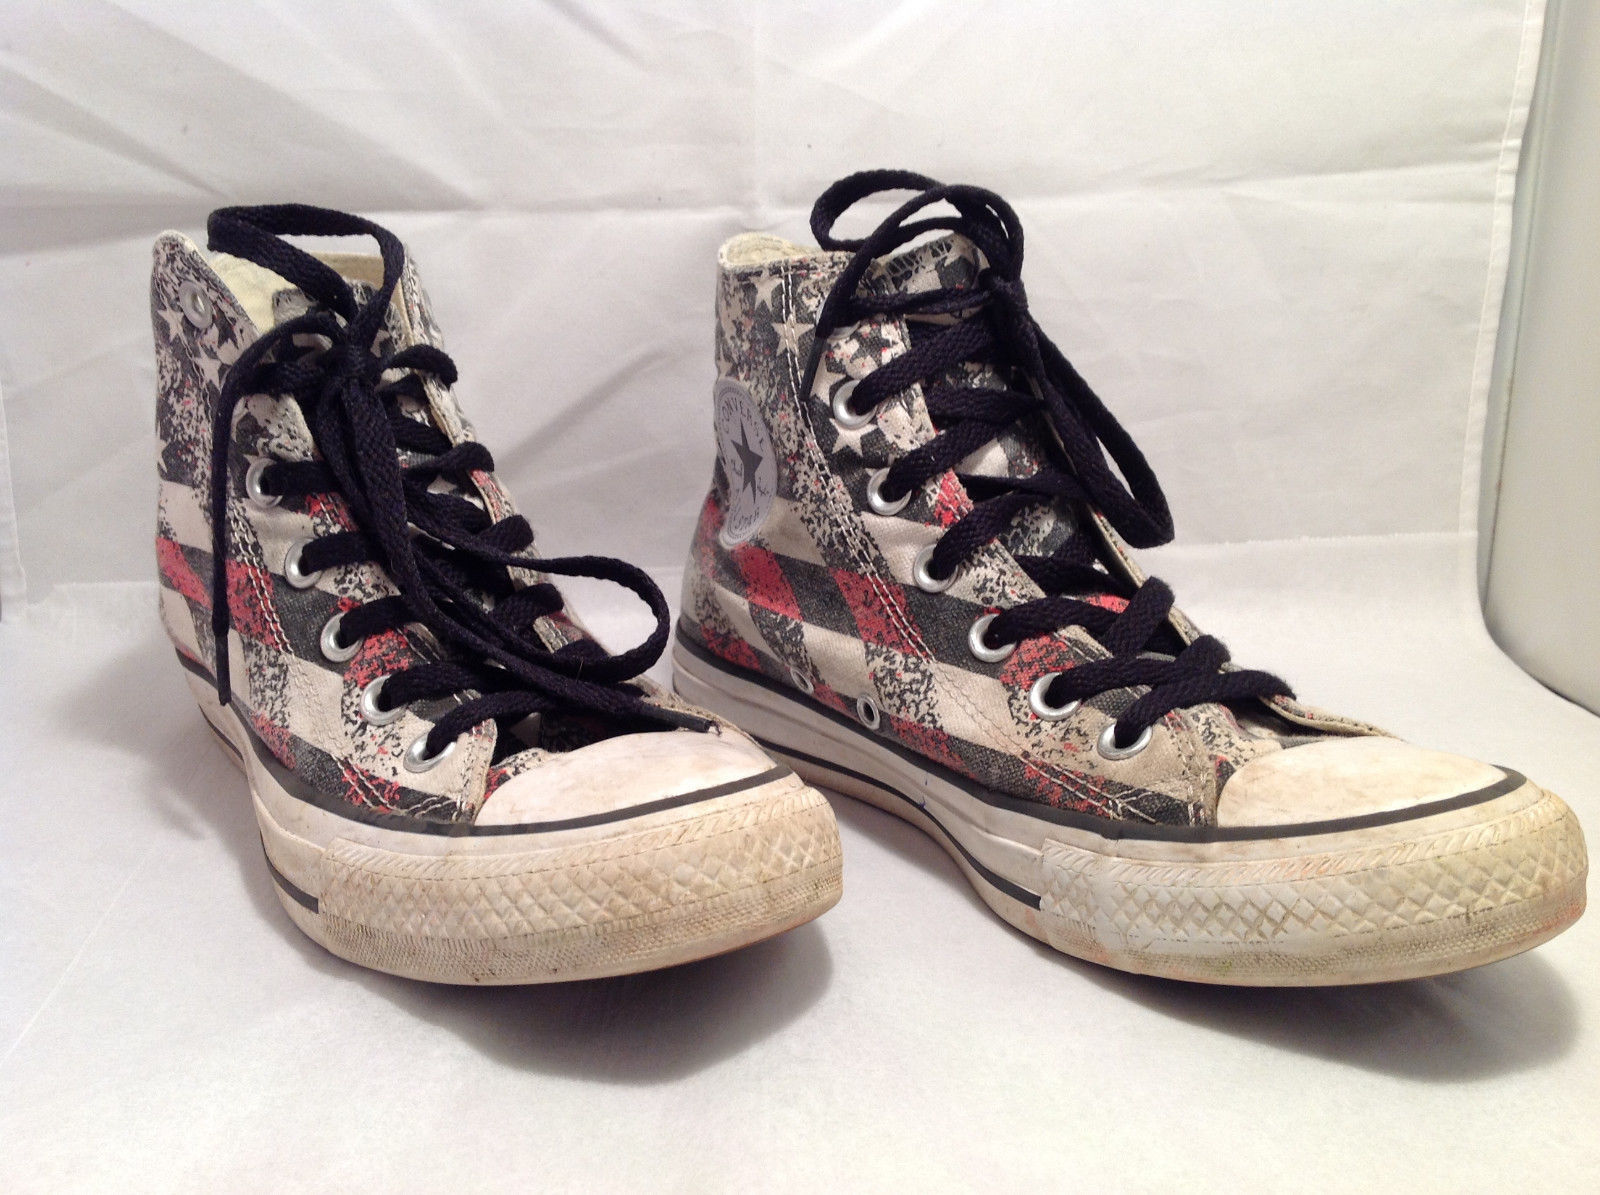 High Top Converse Sneakers Men's Size 5 Women's 7 Stars Stripes Red Black White